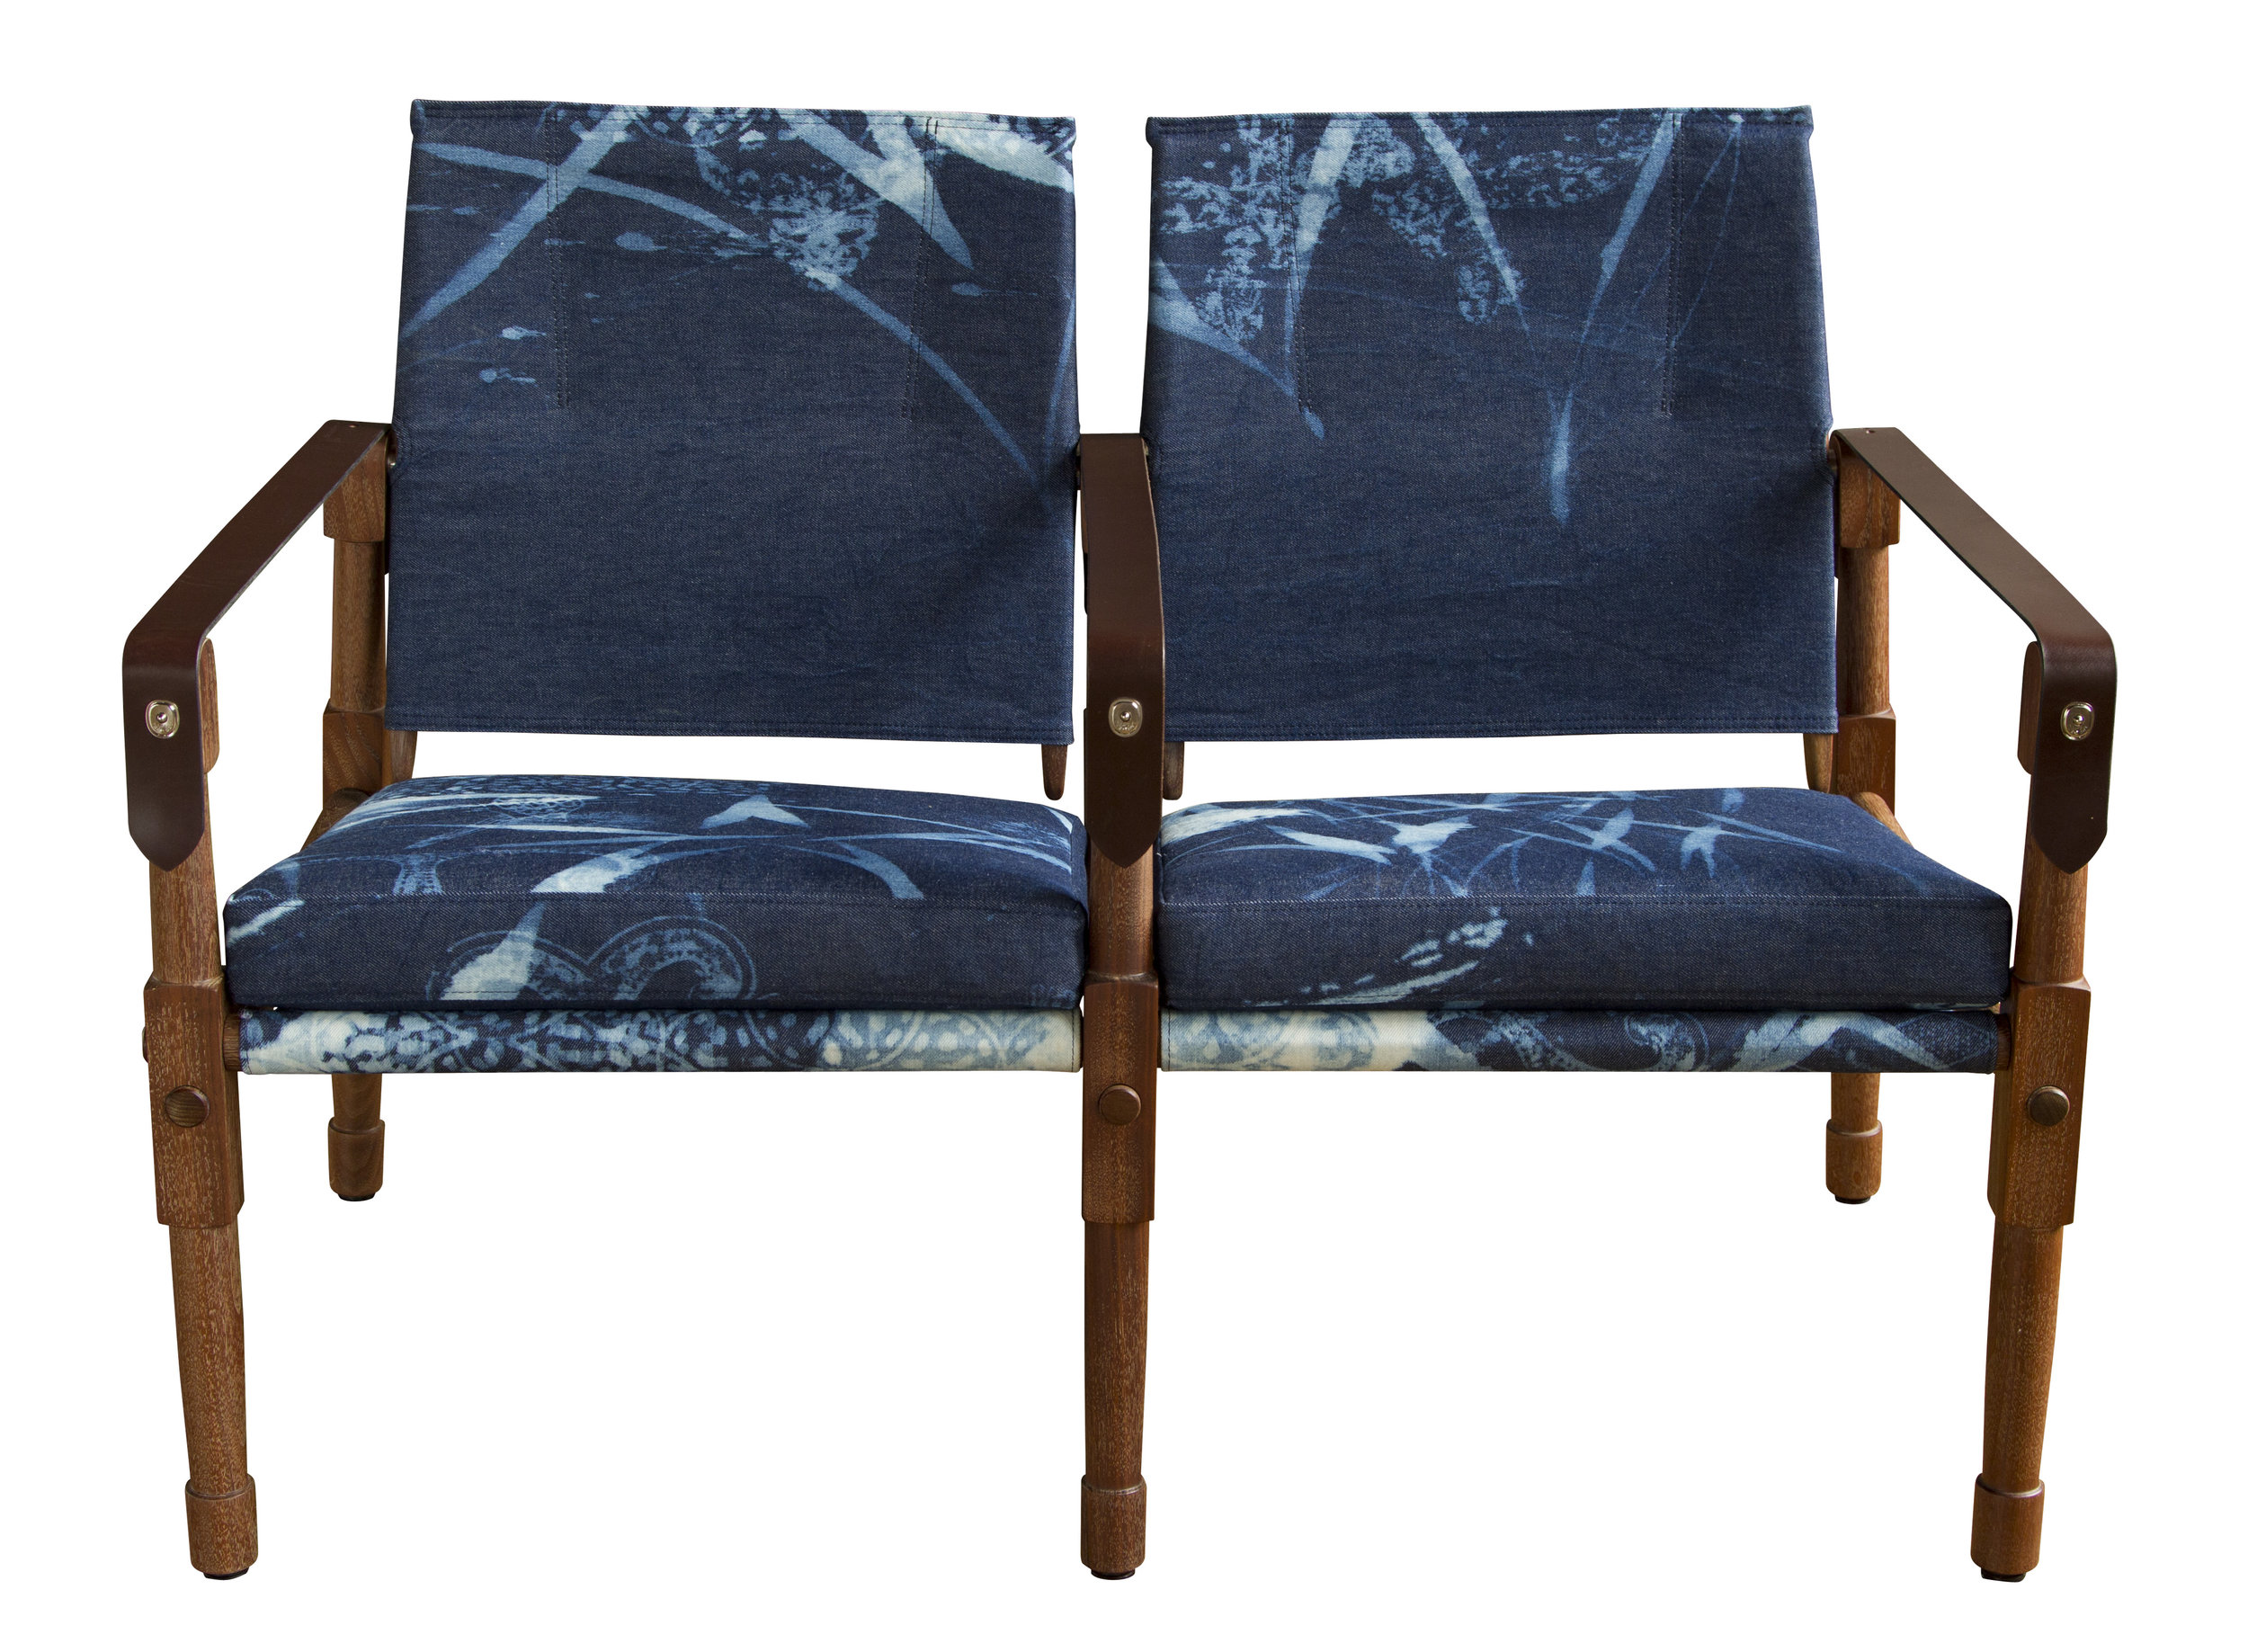 Oiled walnut with Robshaw bleach block-printed denim upholstery and havana English bridle leather strapping  13